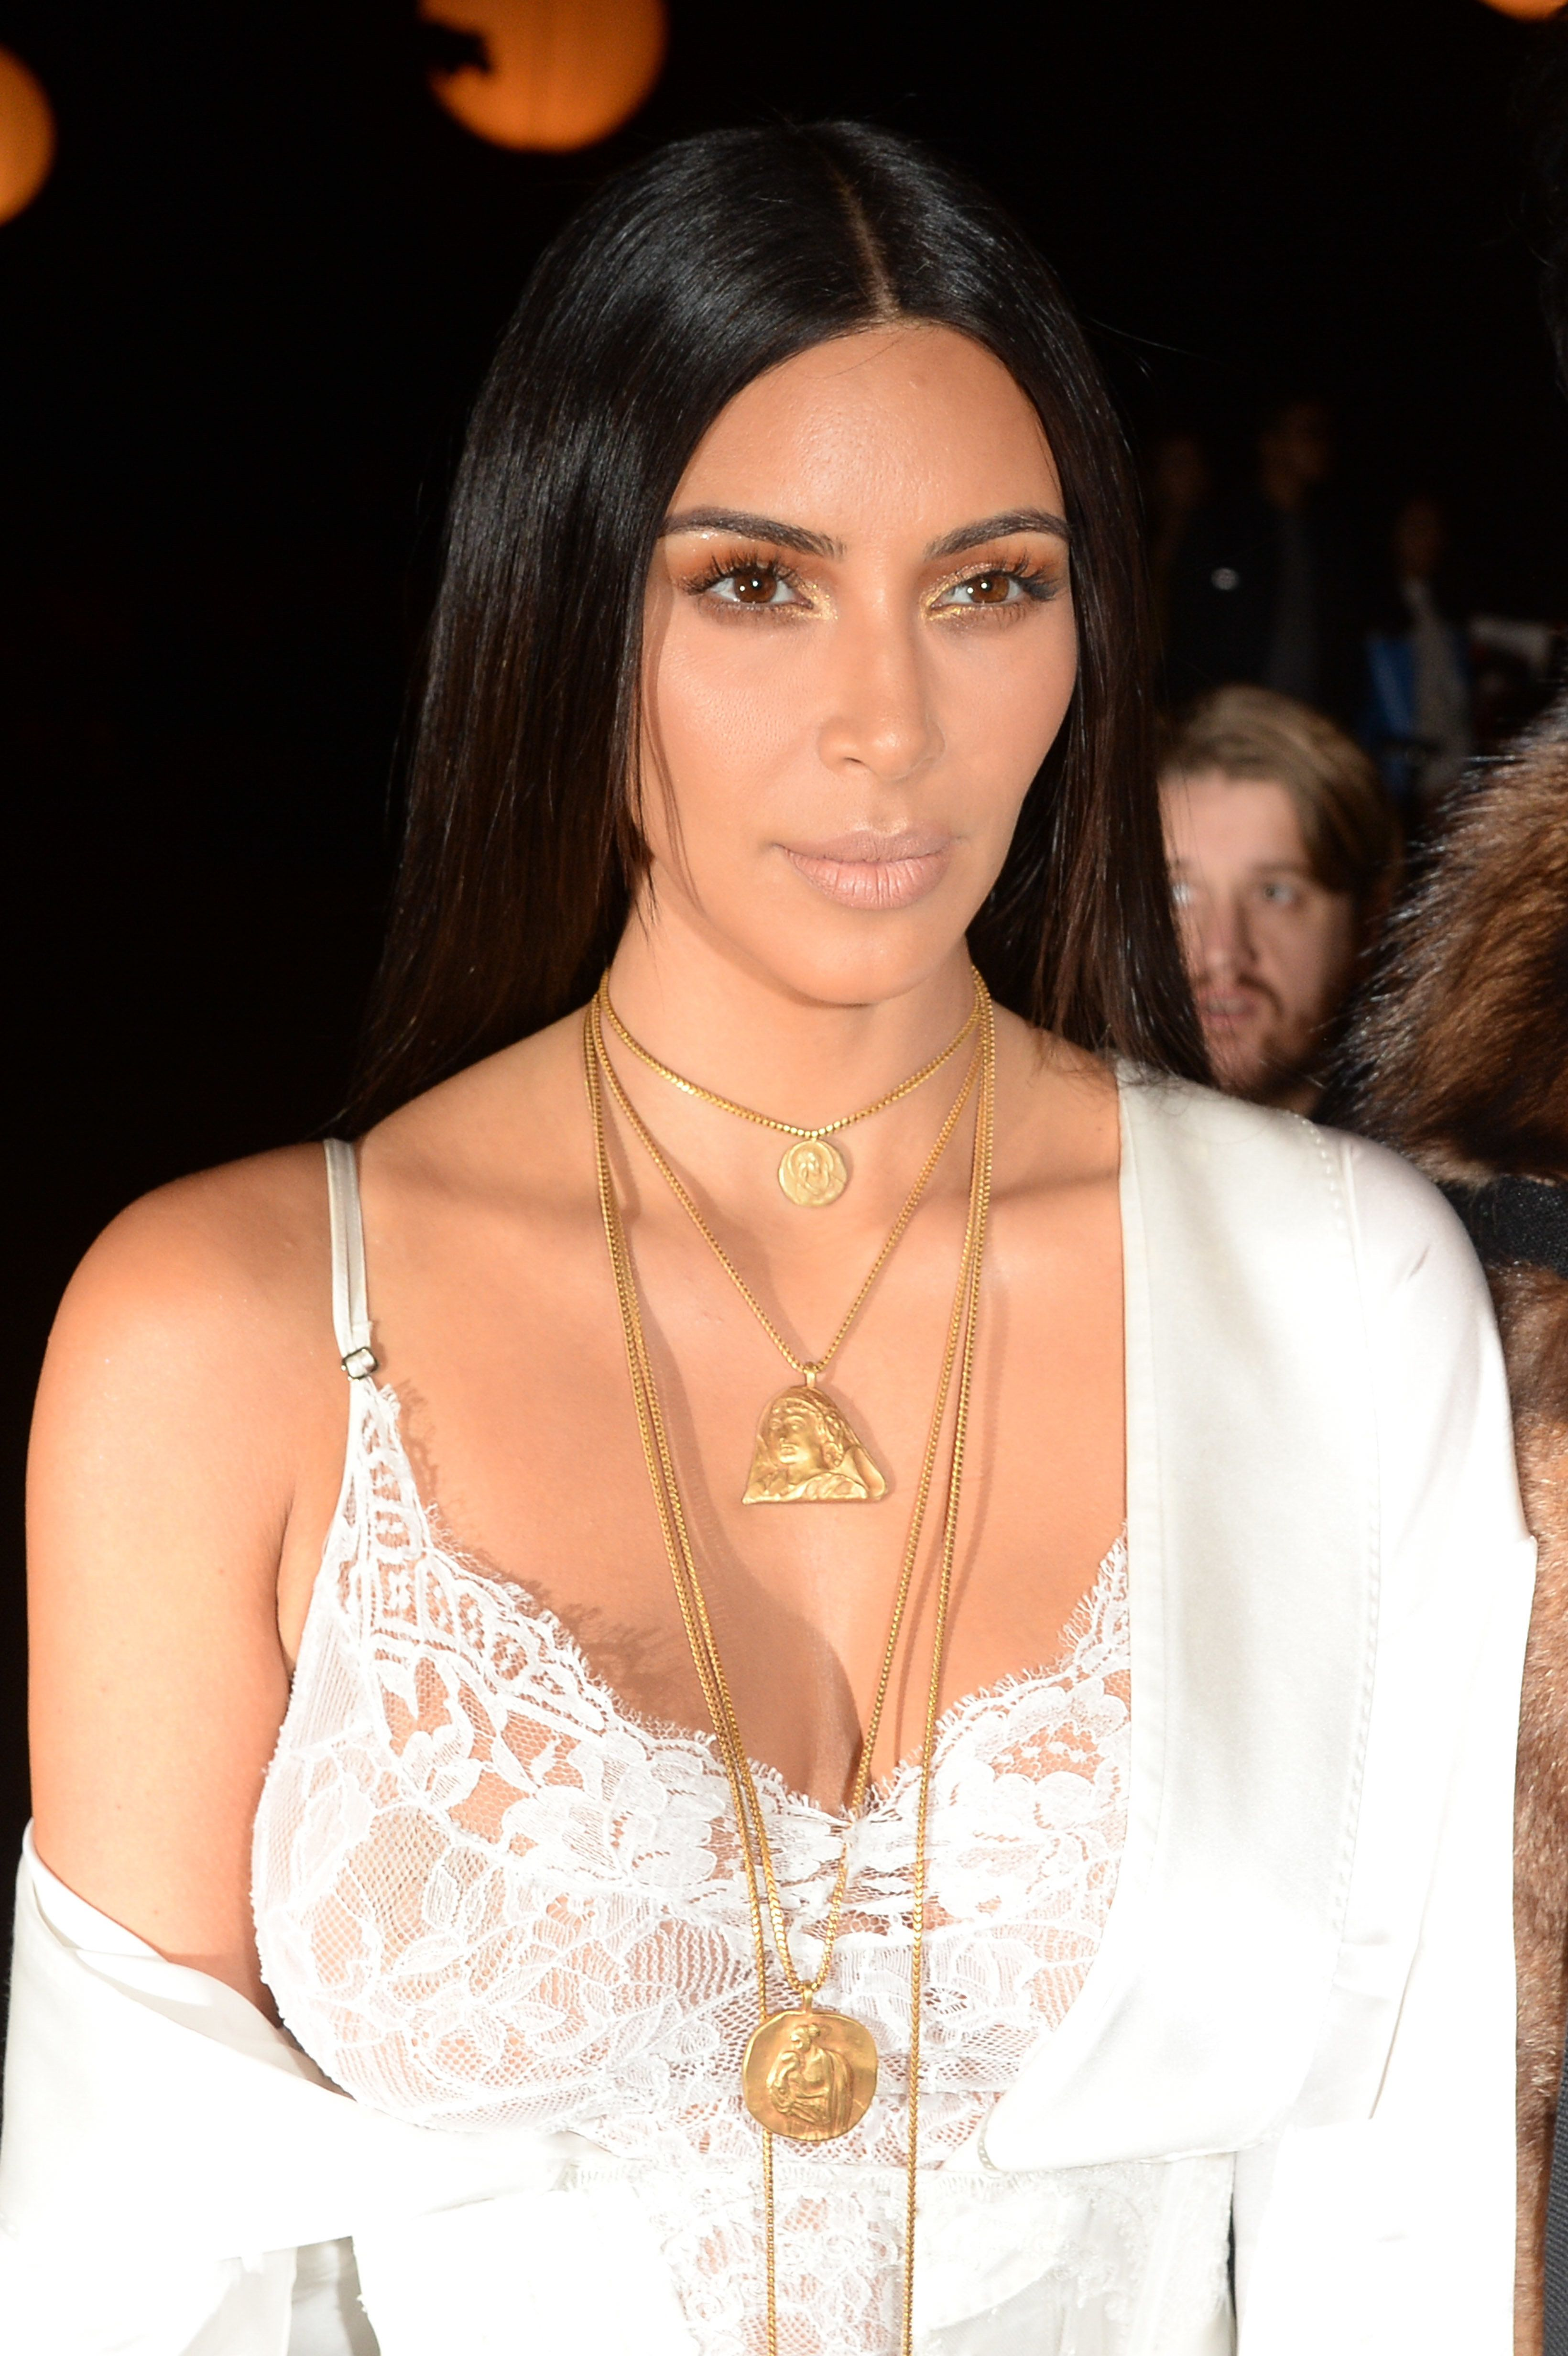 Kim has never been retiring when it comes to showing off her